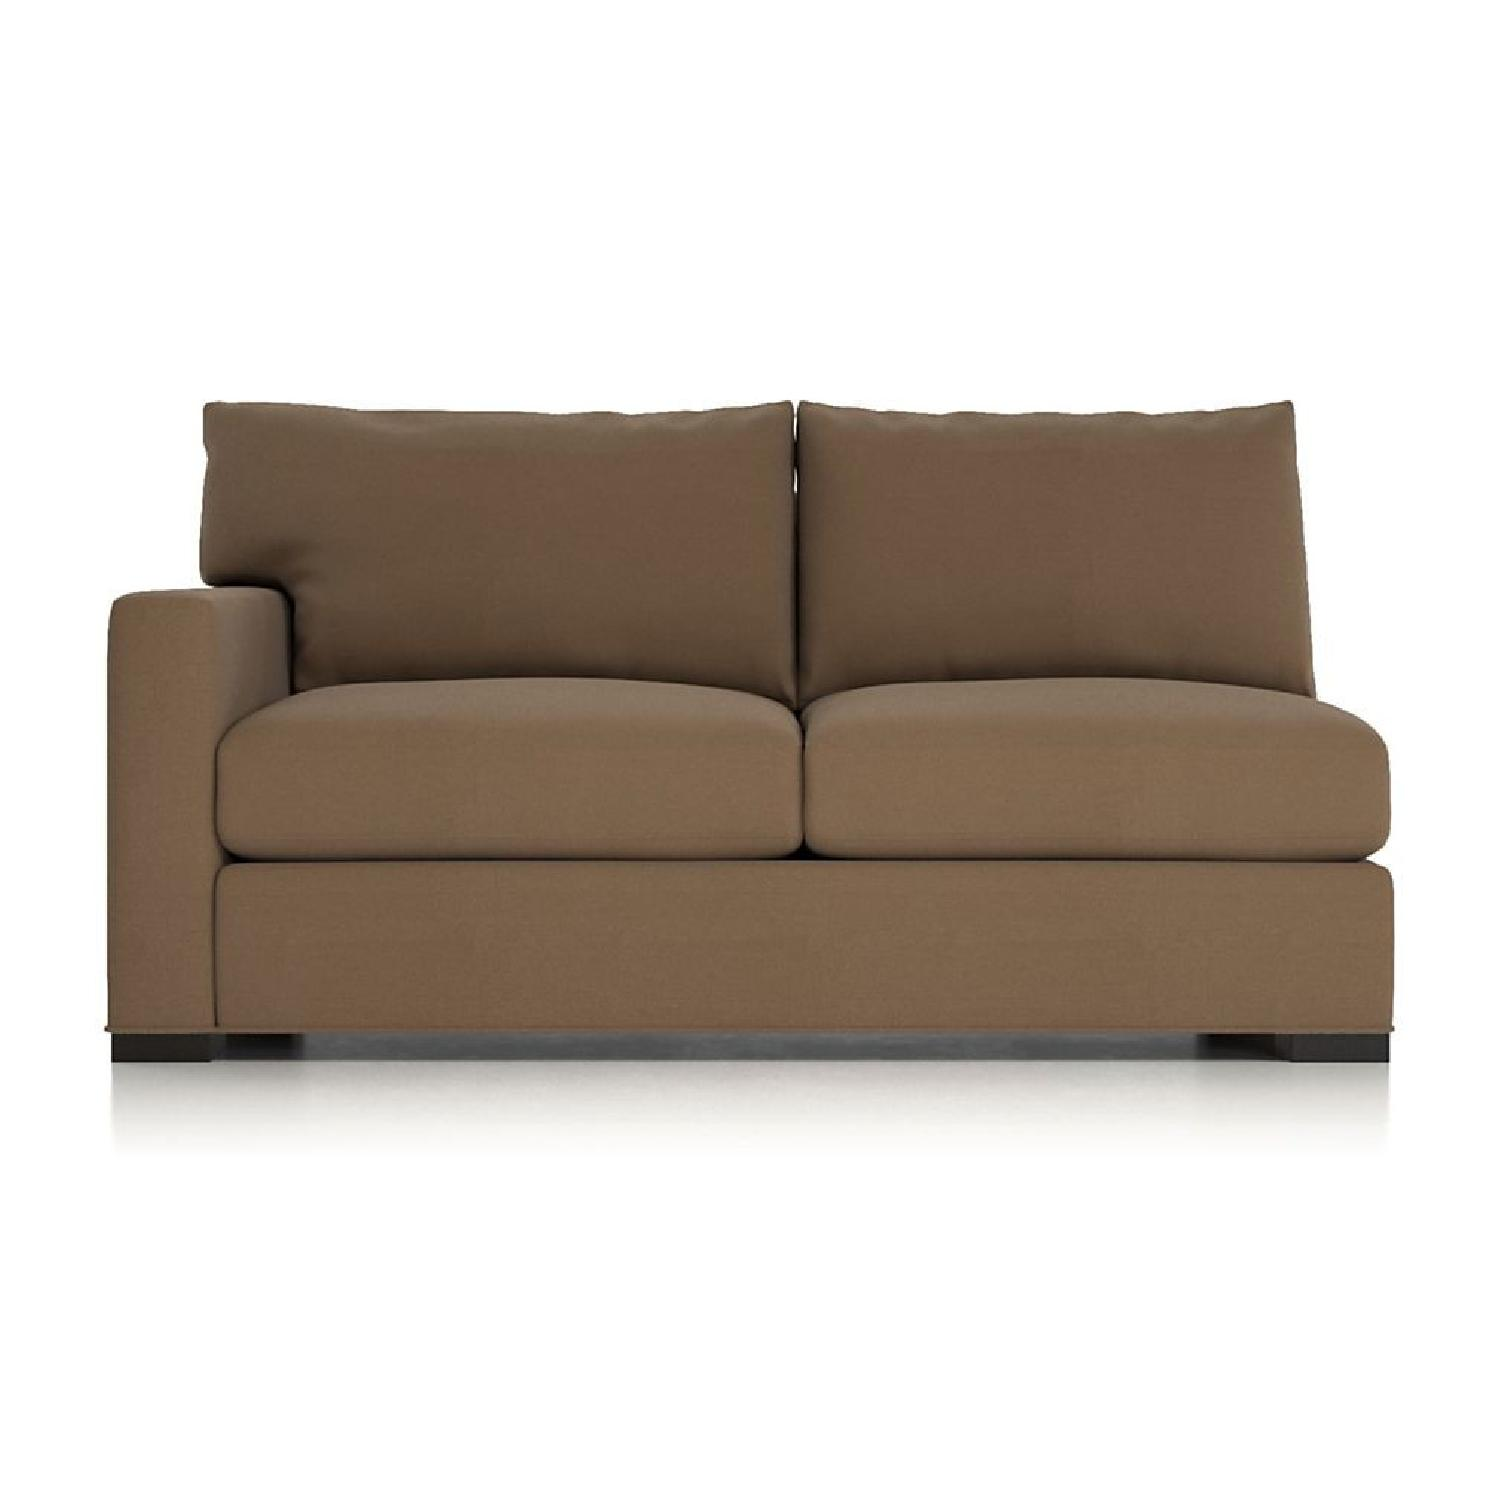 Crate & Barrel Axis 3-Piece Sectional Sofa - image-1